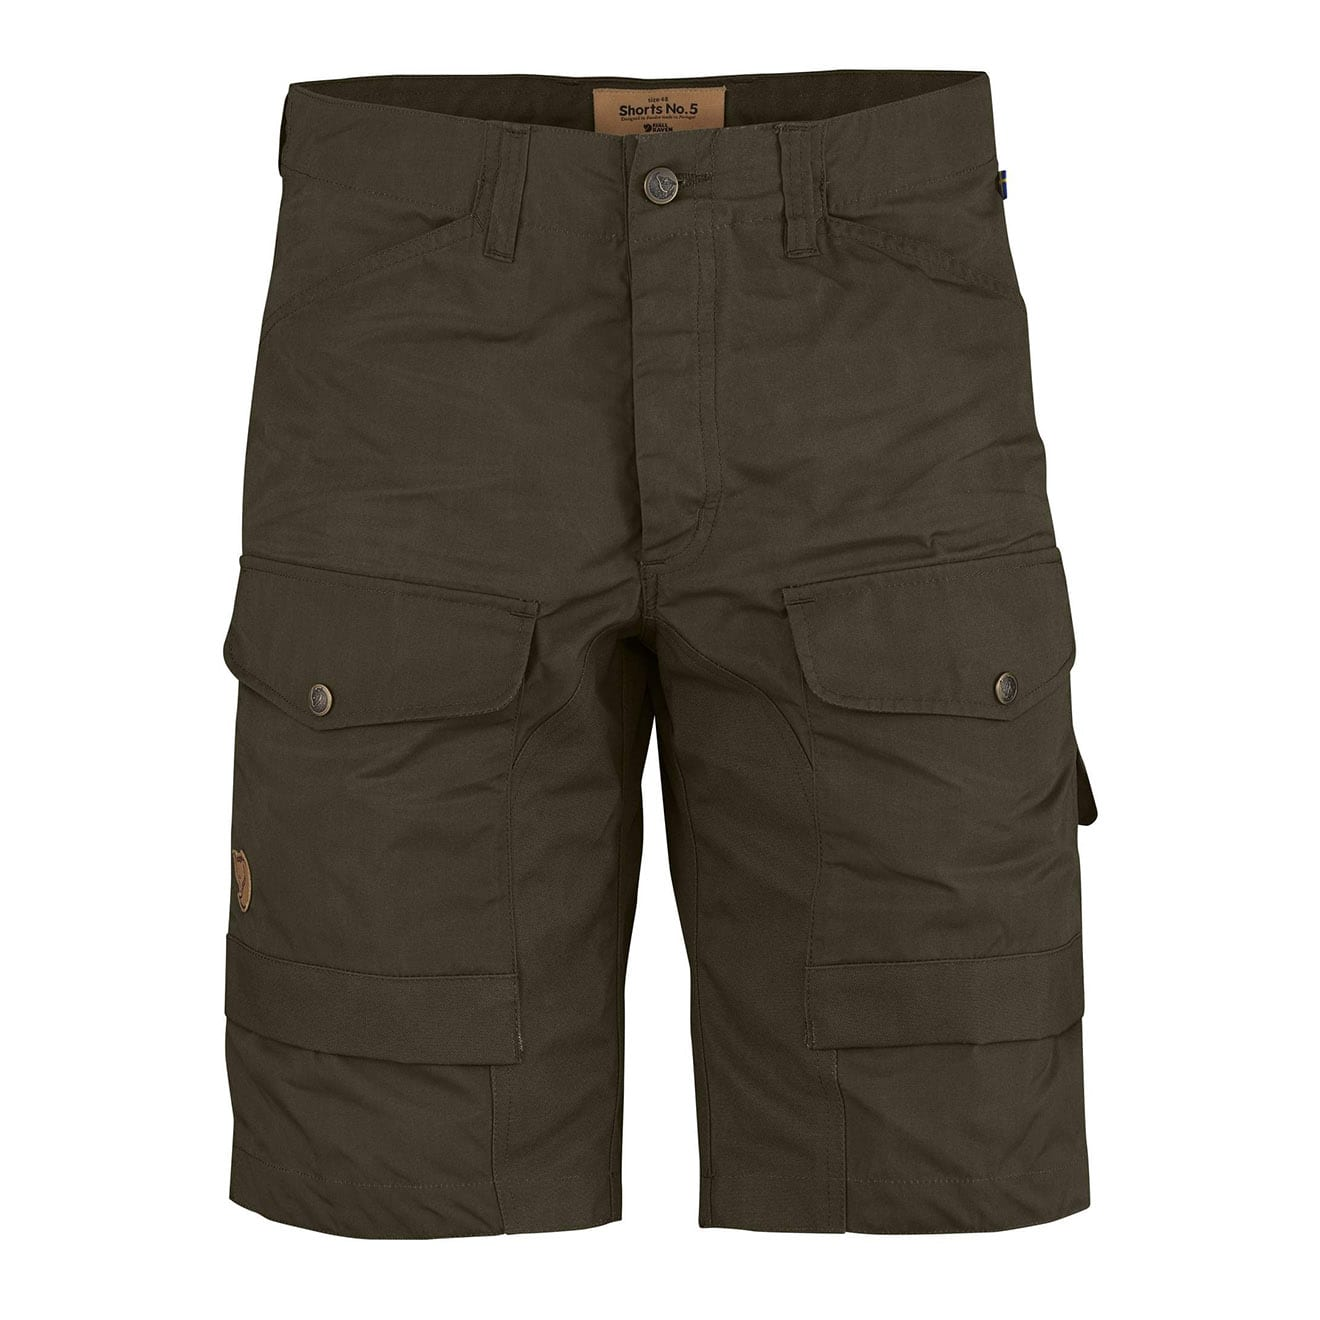 Fjallraven Shorts No 5 Dark Olive